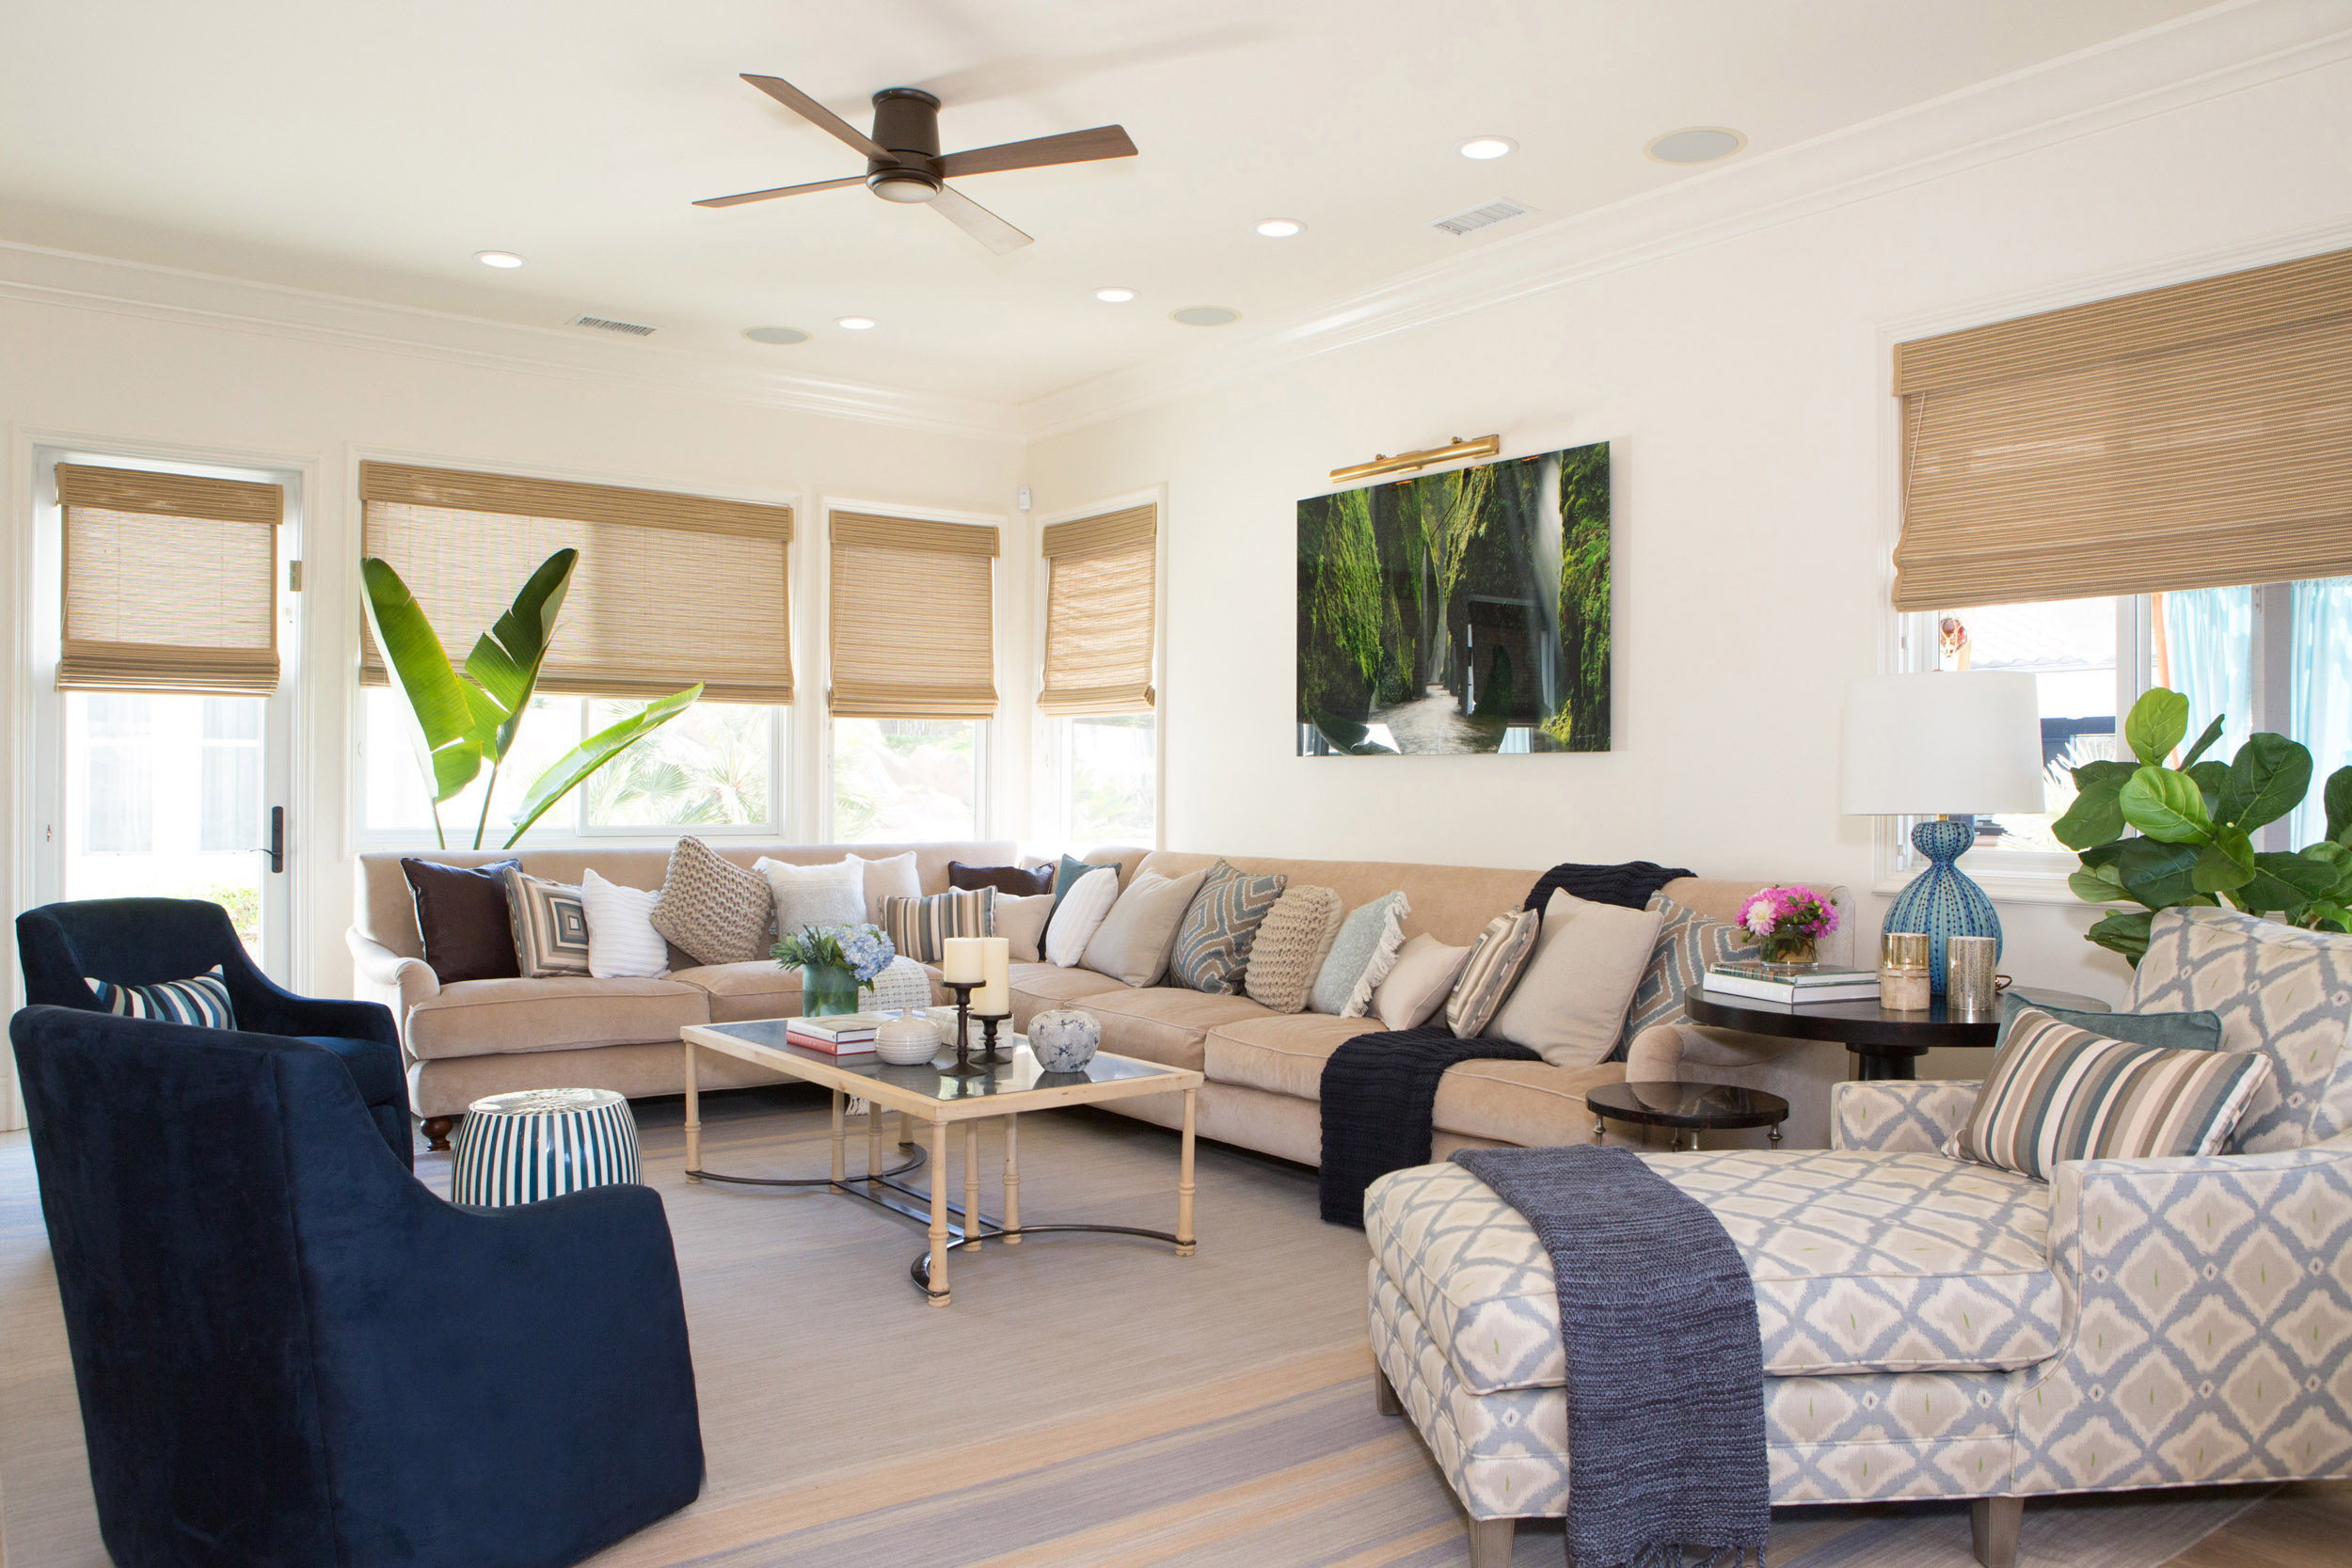 green interior design - sustainable home by lori dennis